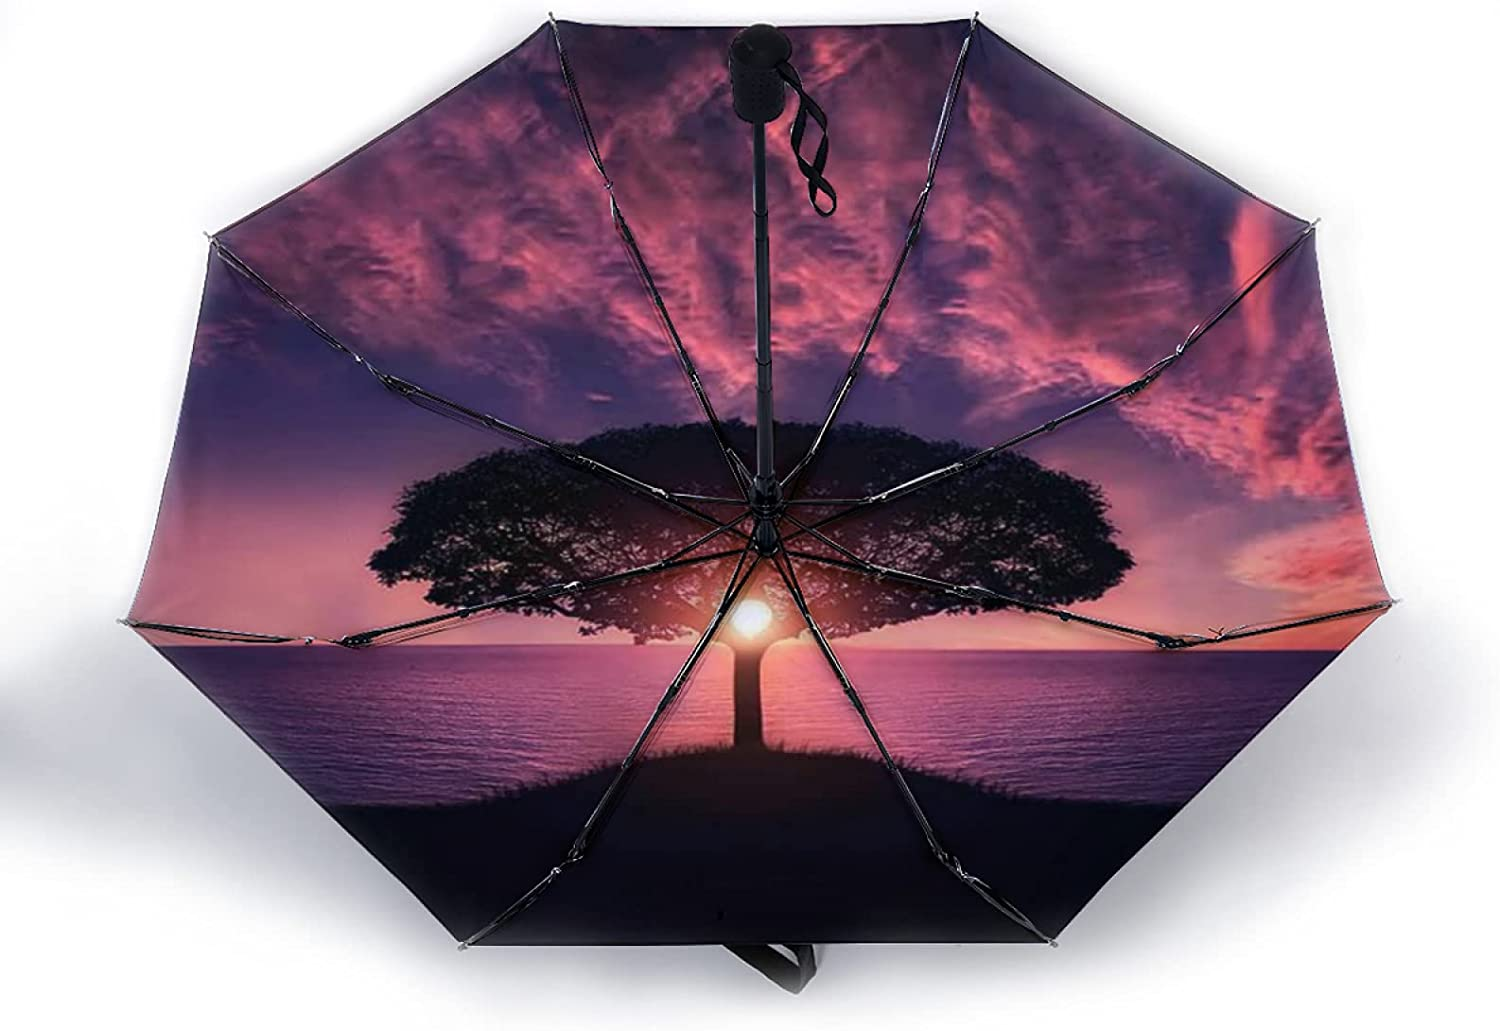 Automatic Umbrella Compact Travel Keeps Safe and Max 79% OFF San Antonio Mall You Dr